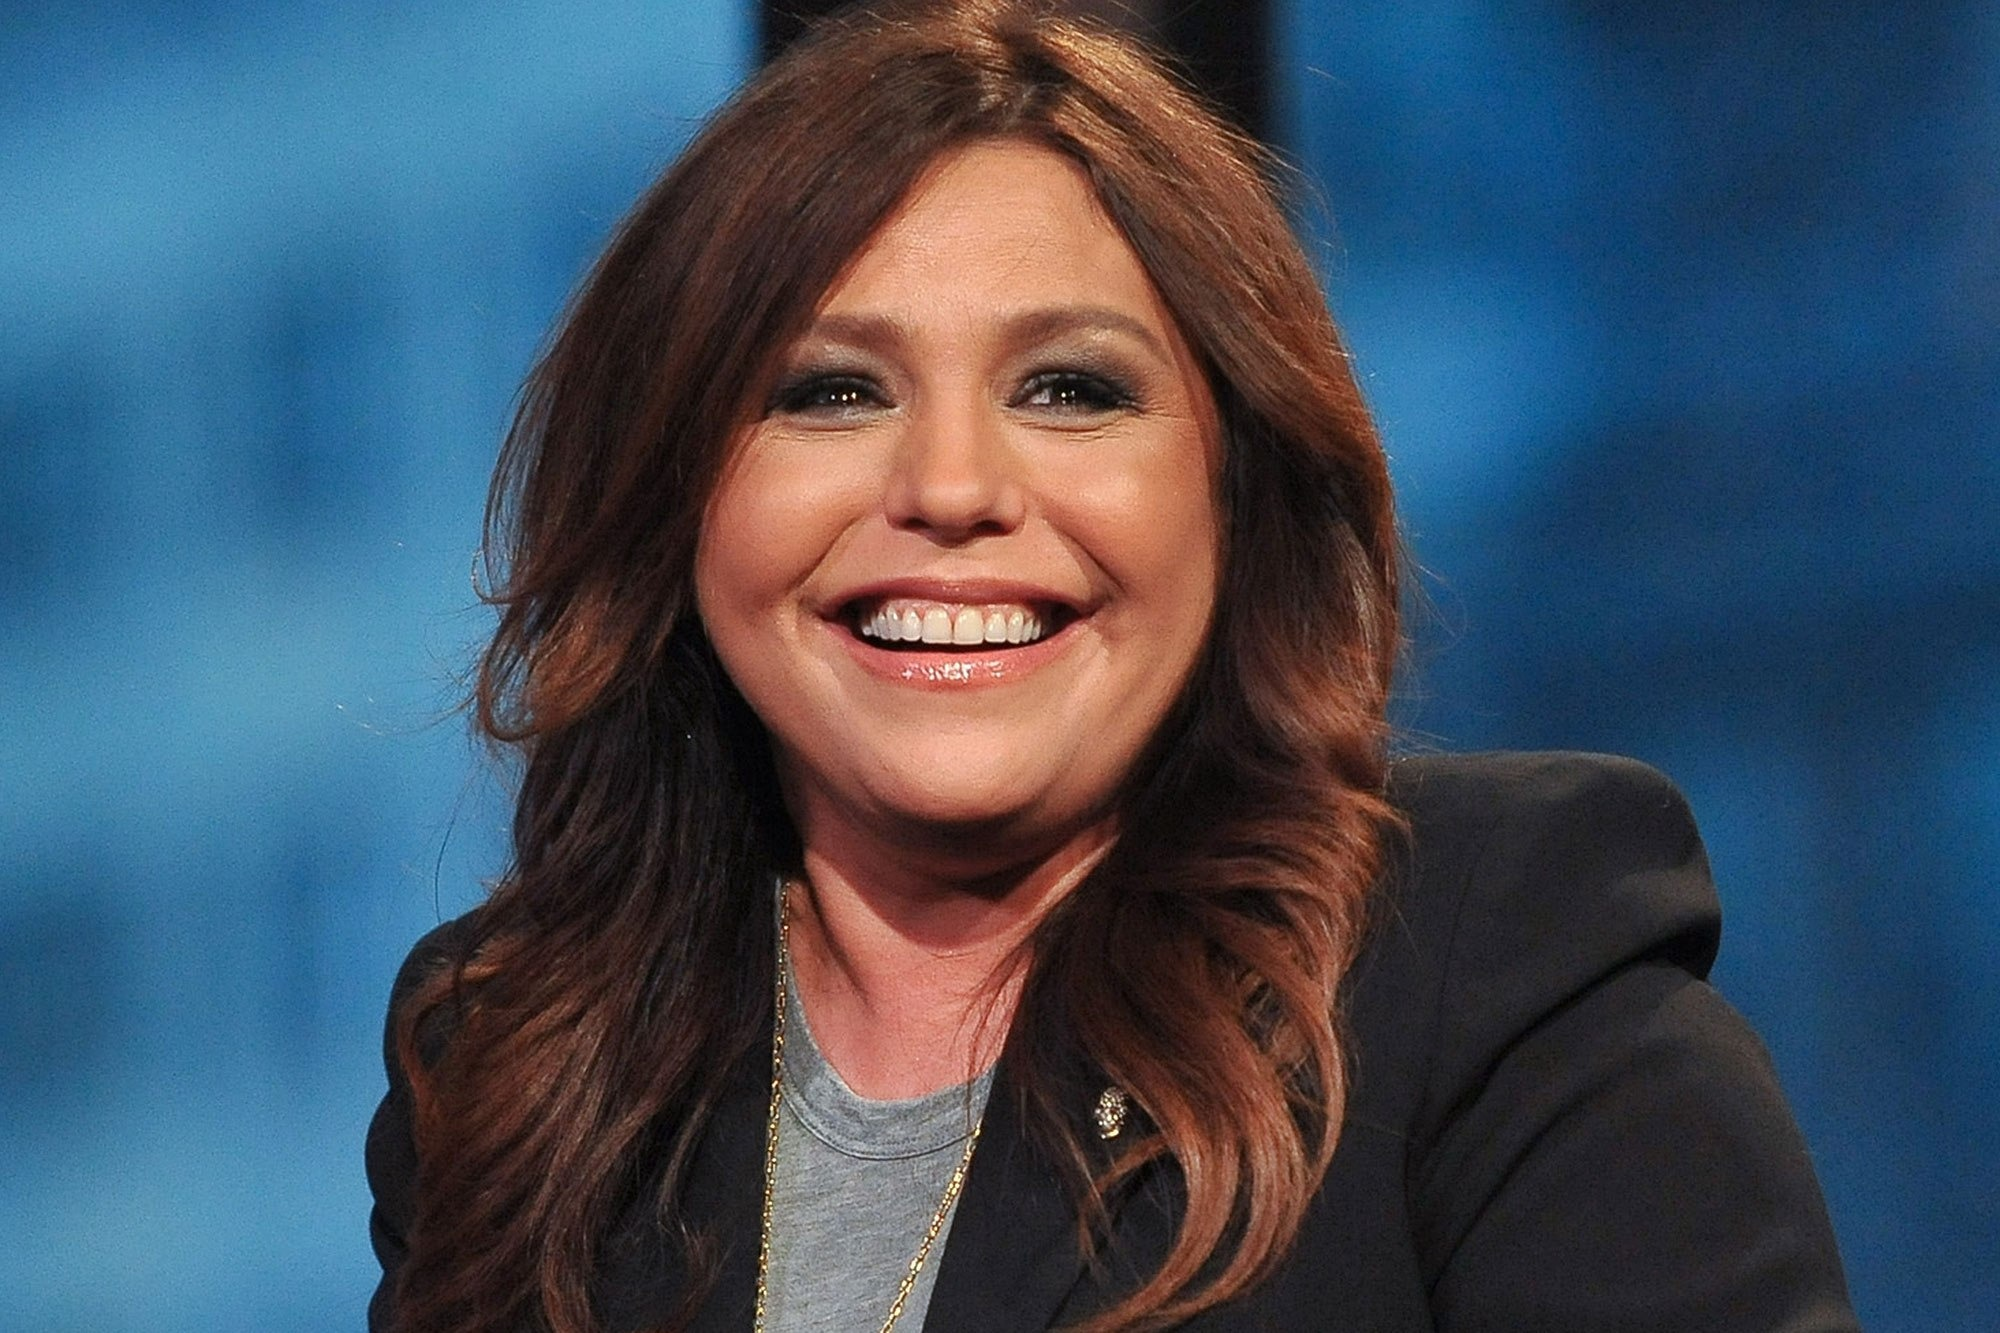 Rachael Ray giving her million dollar smile. She is a host of her syndicated daily talk show Rachael Ray